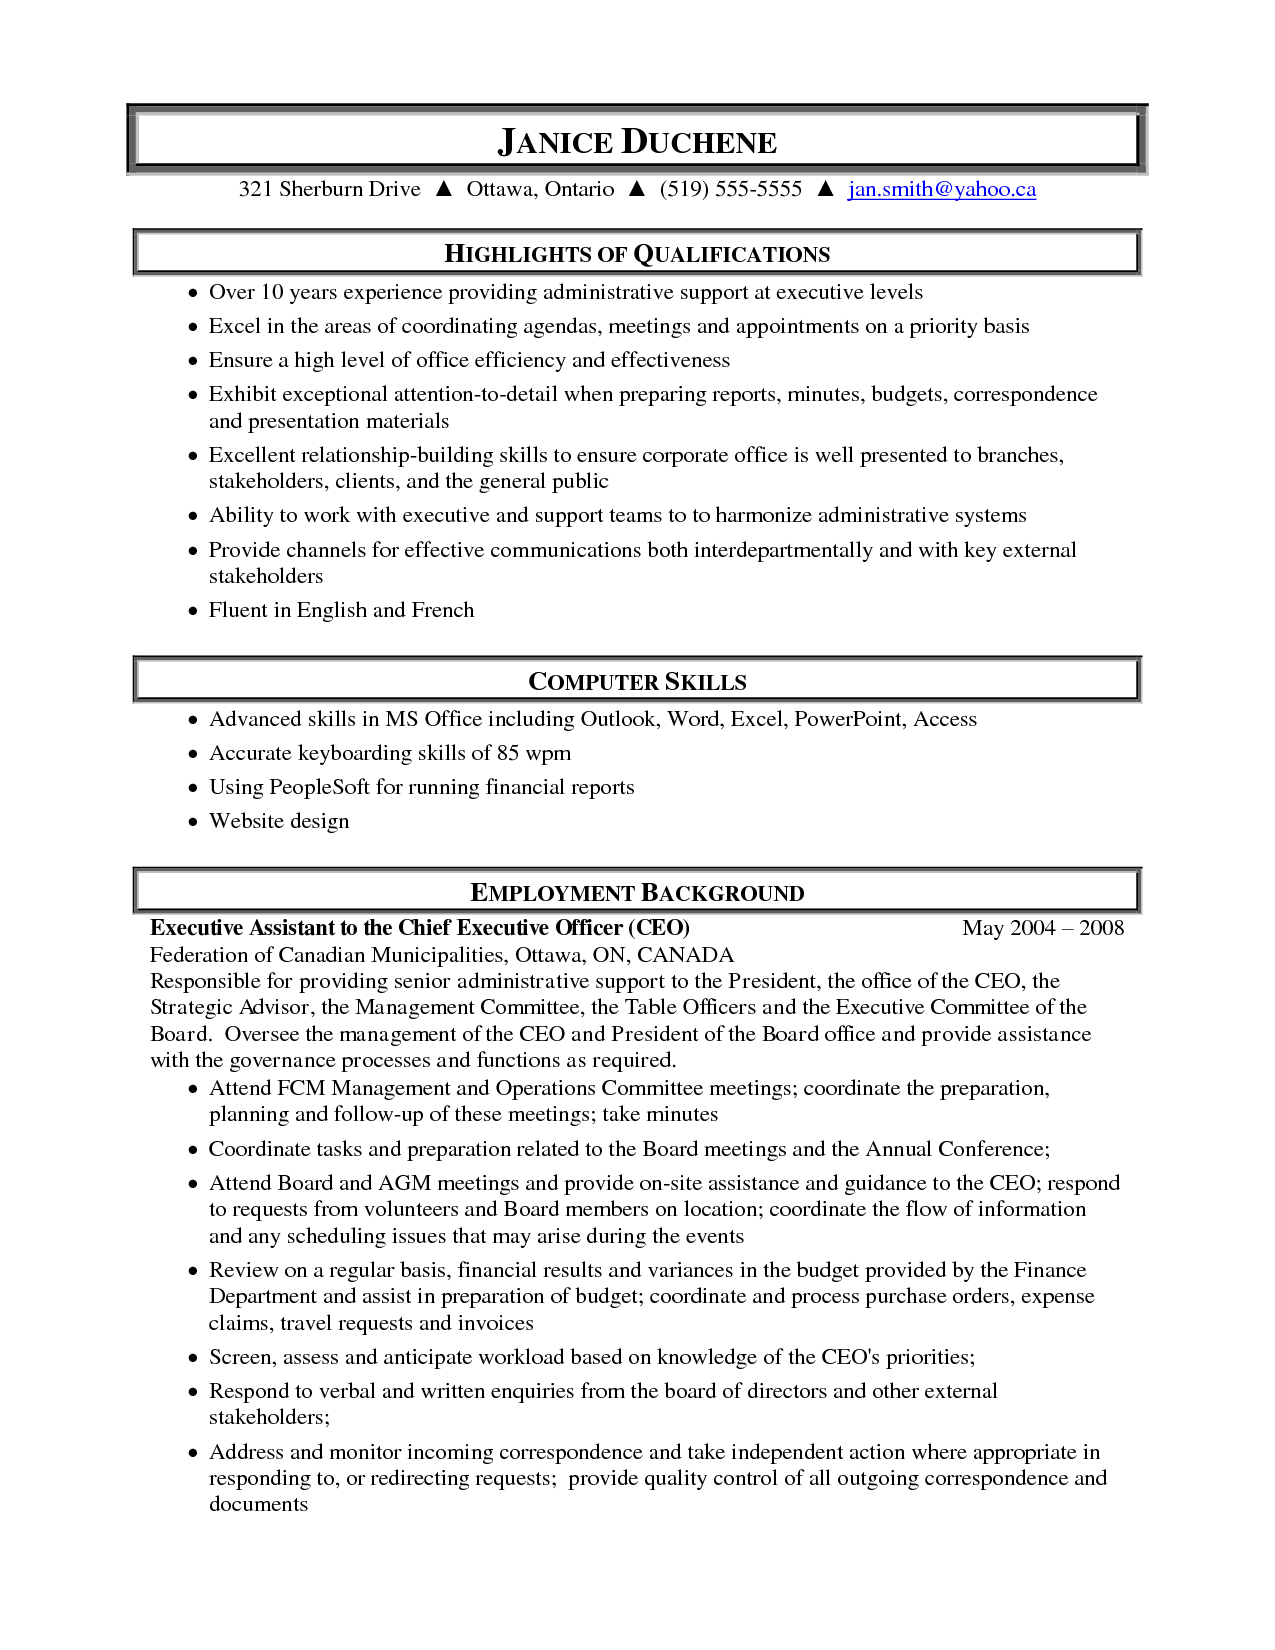 Resume Samples For Administrative Assistant Medical Administrative Assistant Resume Samples Highlight Of .